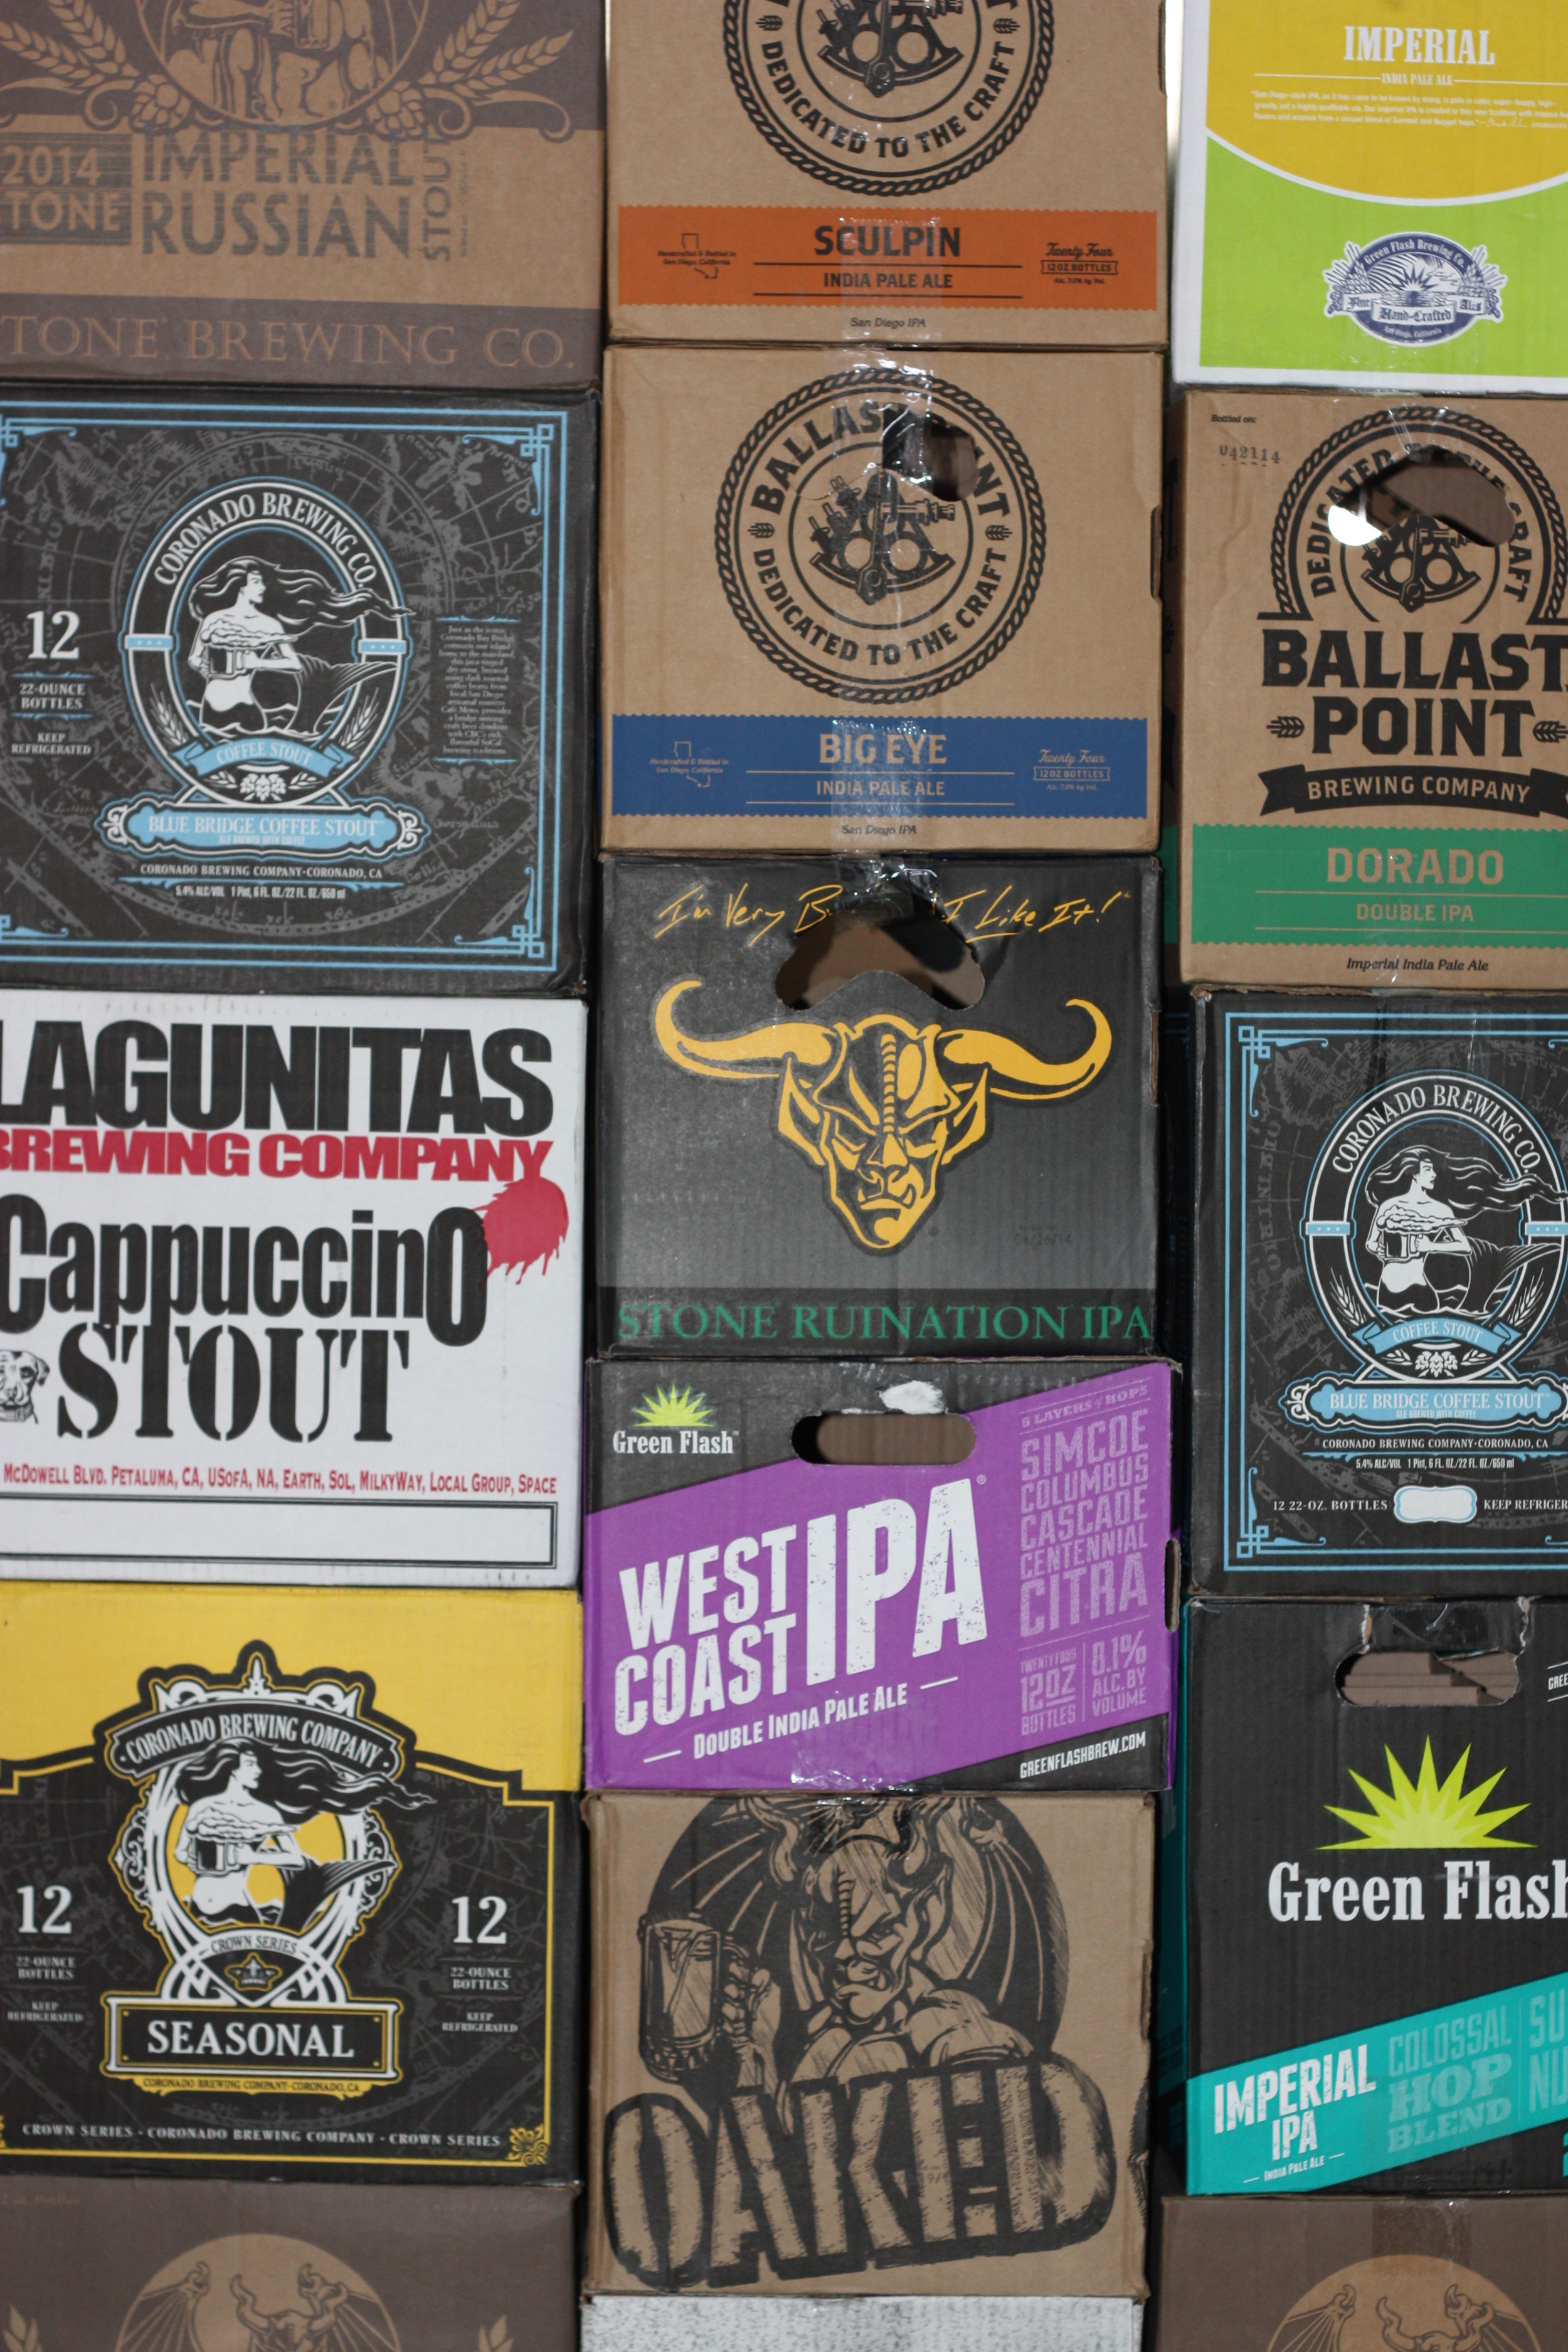 Some of the great beers you will find inside Antenna America